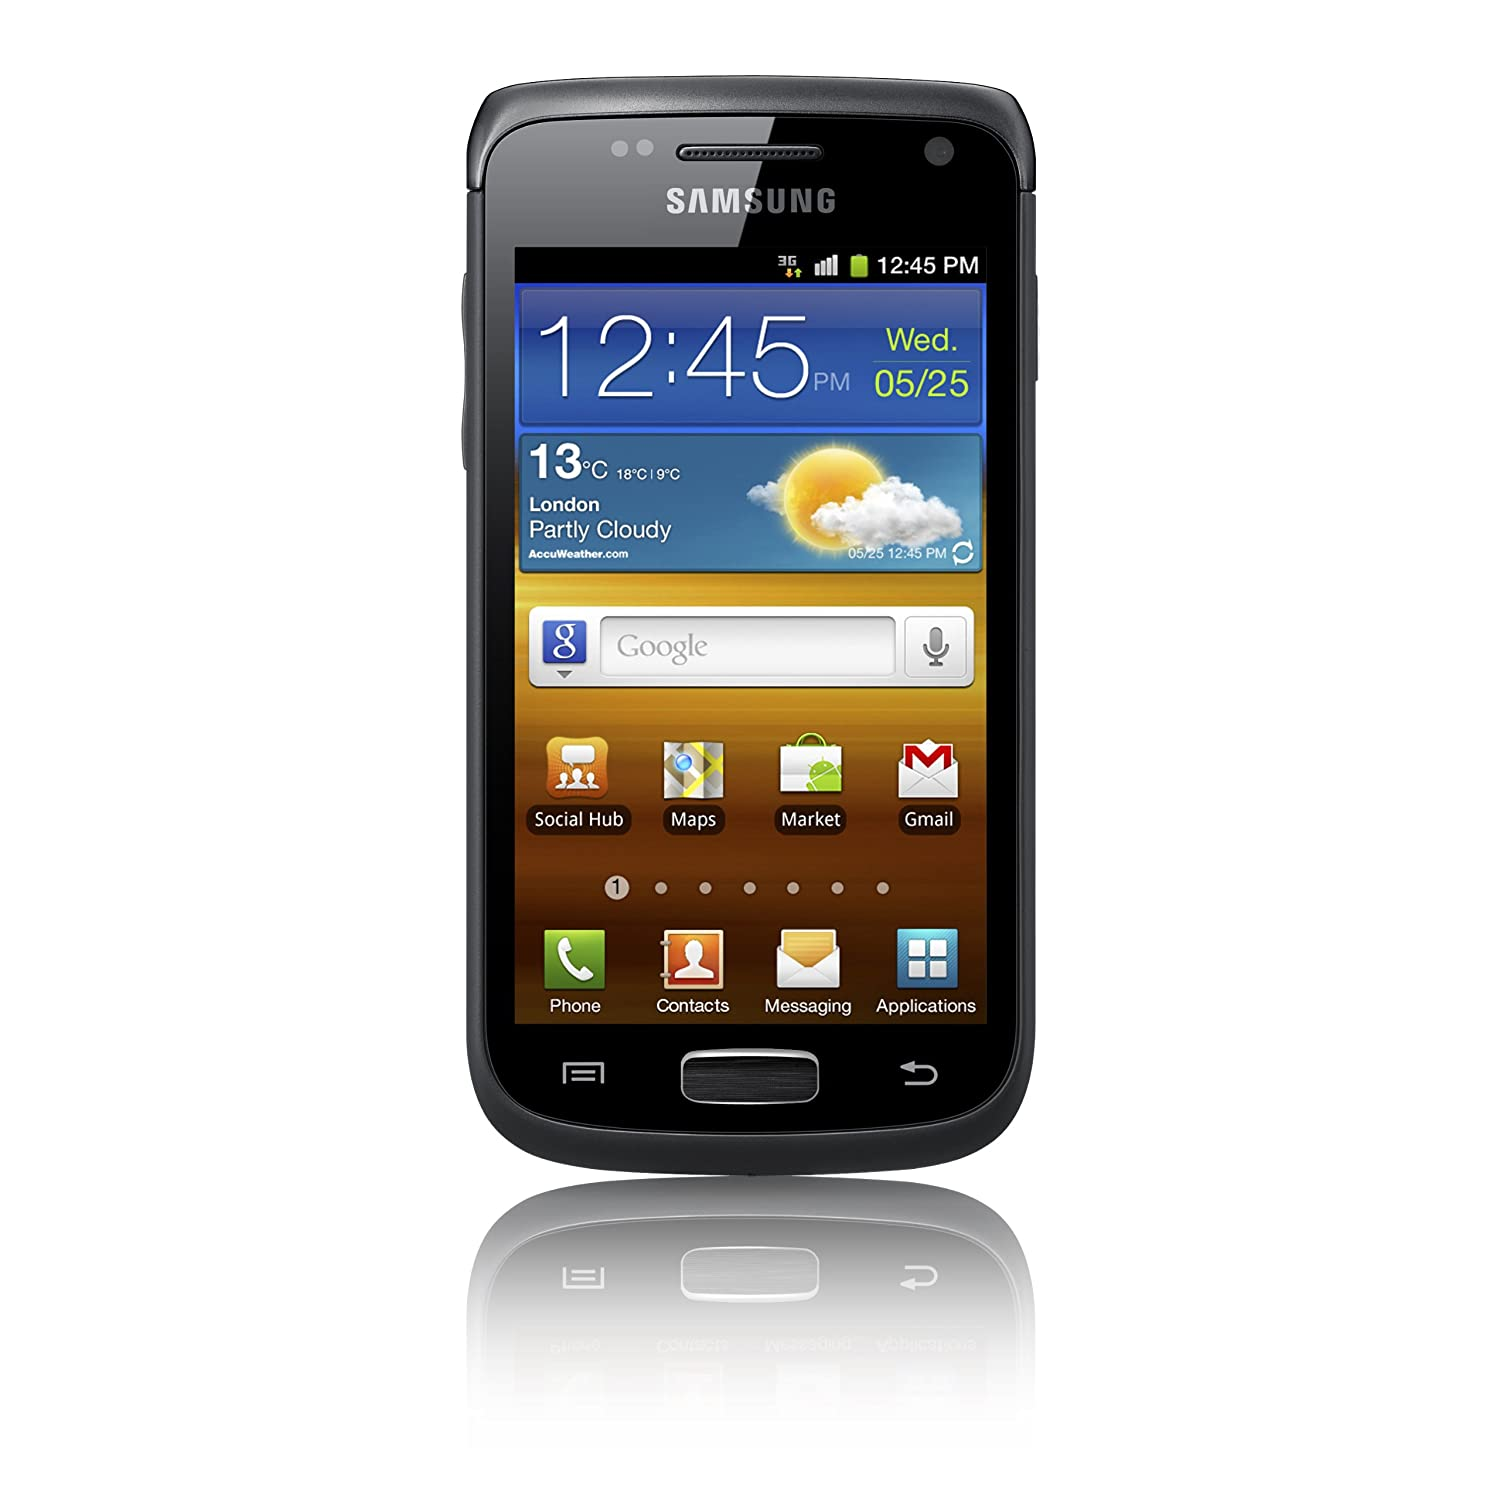 Samsung I8150 Galaxy W Sim Free Smartphone: Amazon.co.uk: Electronics